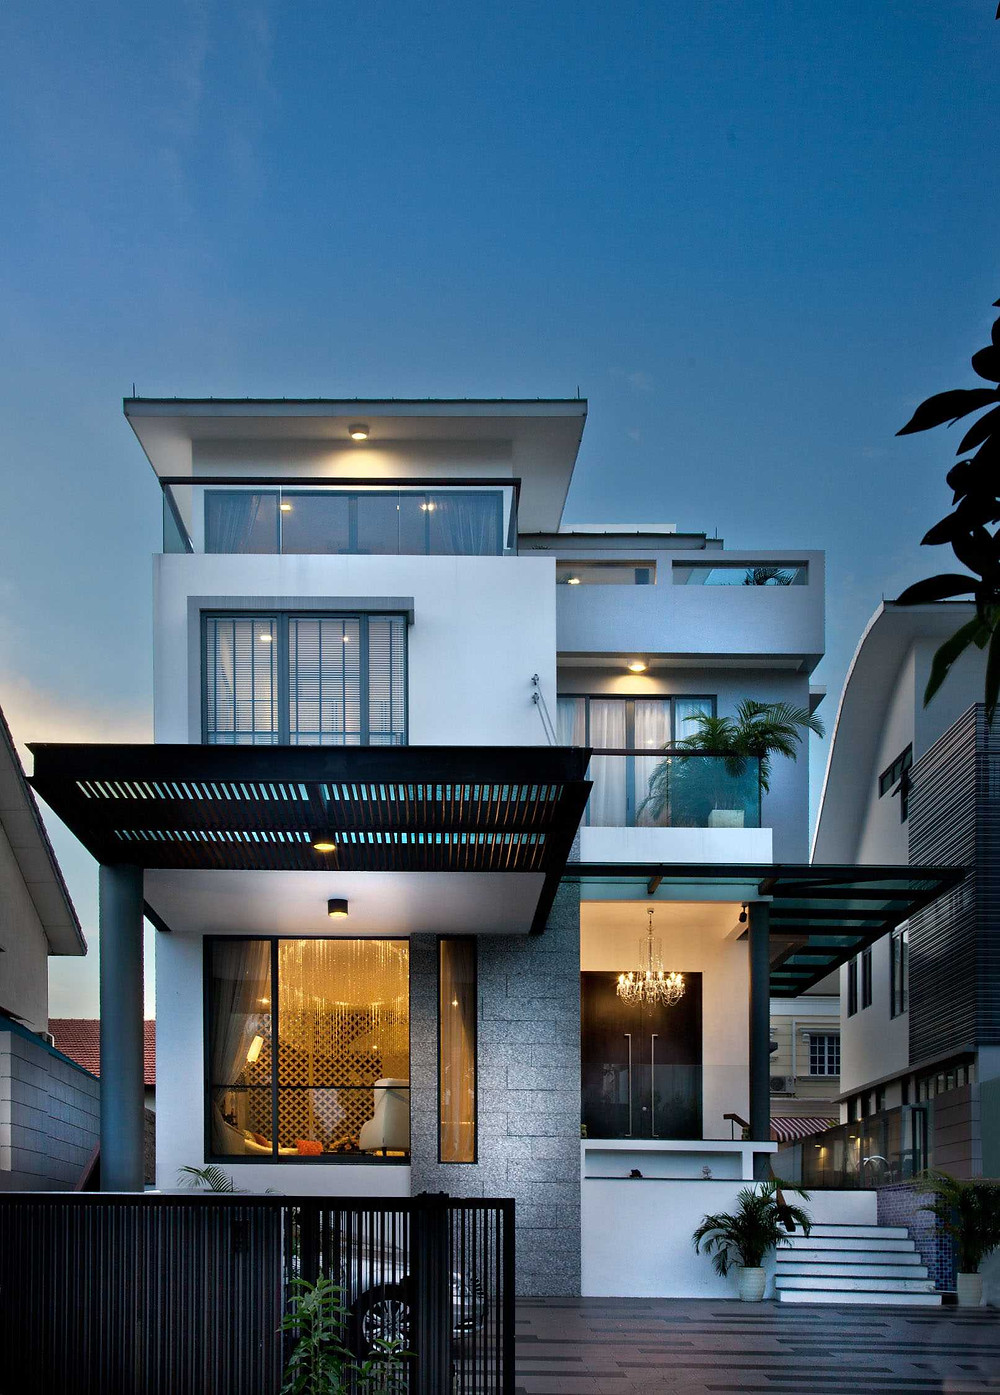 Parkstone Road - Residential Property Singapore - Timeless Designs - Exterior - Best Interior Design Singapore - Designworx Interior Consultant